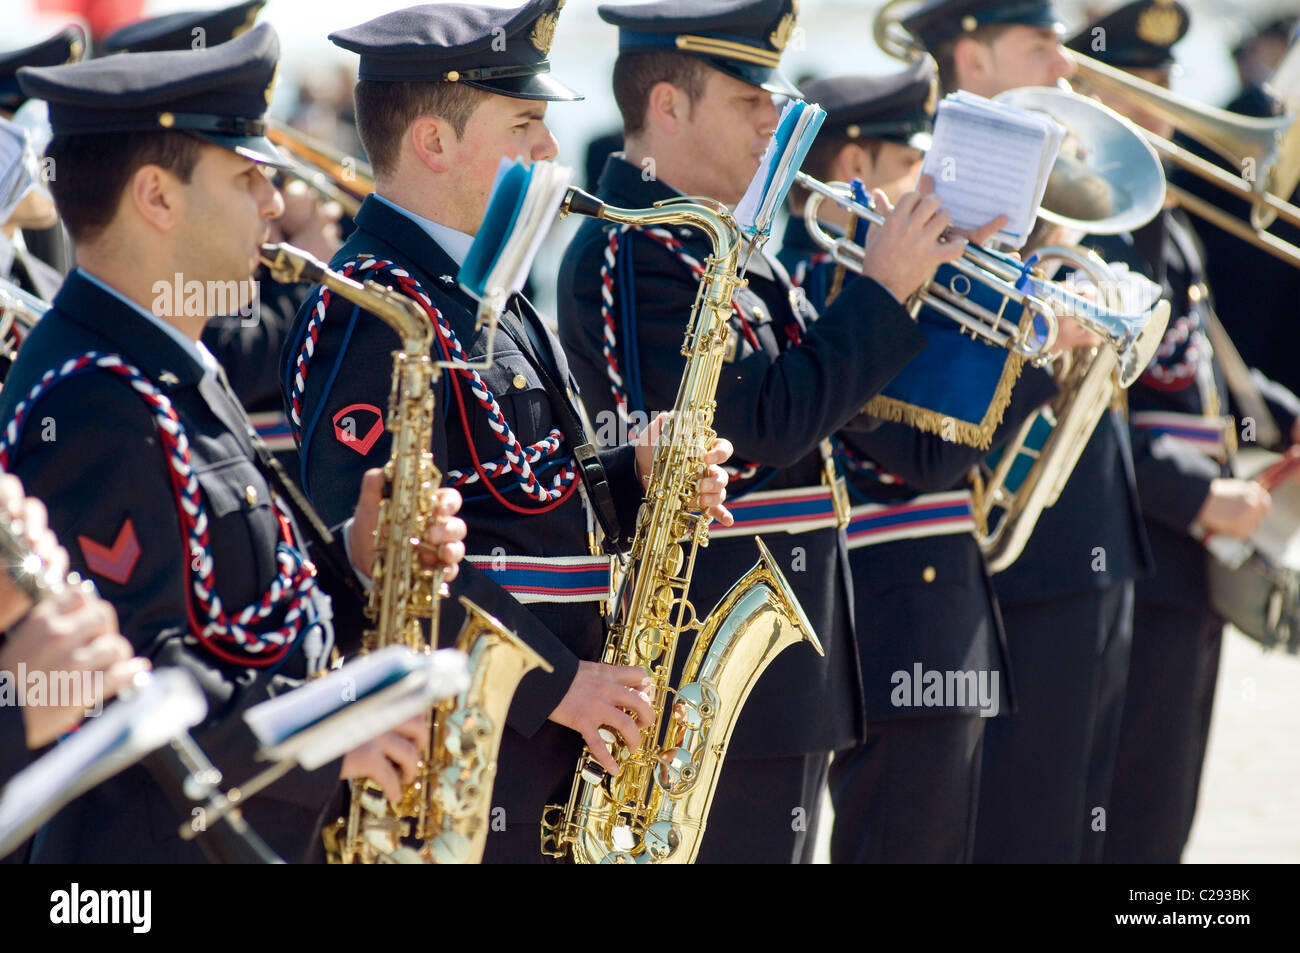 italian armed forces marching band bands musical instruments brass section wind instrument music ceremonial dress - Stock Image